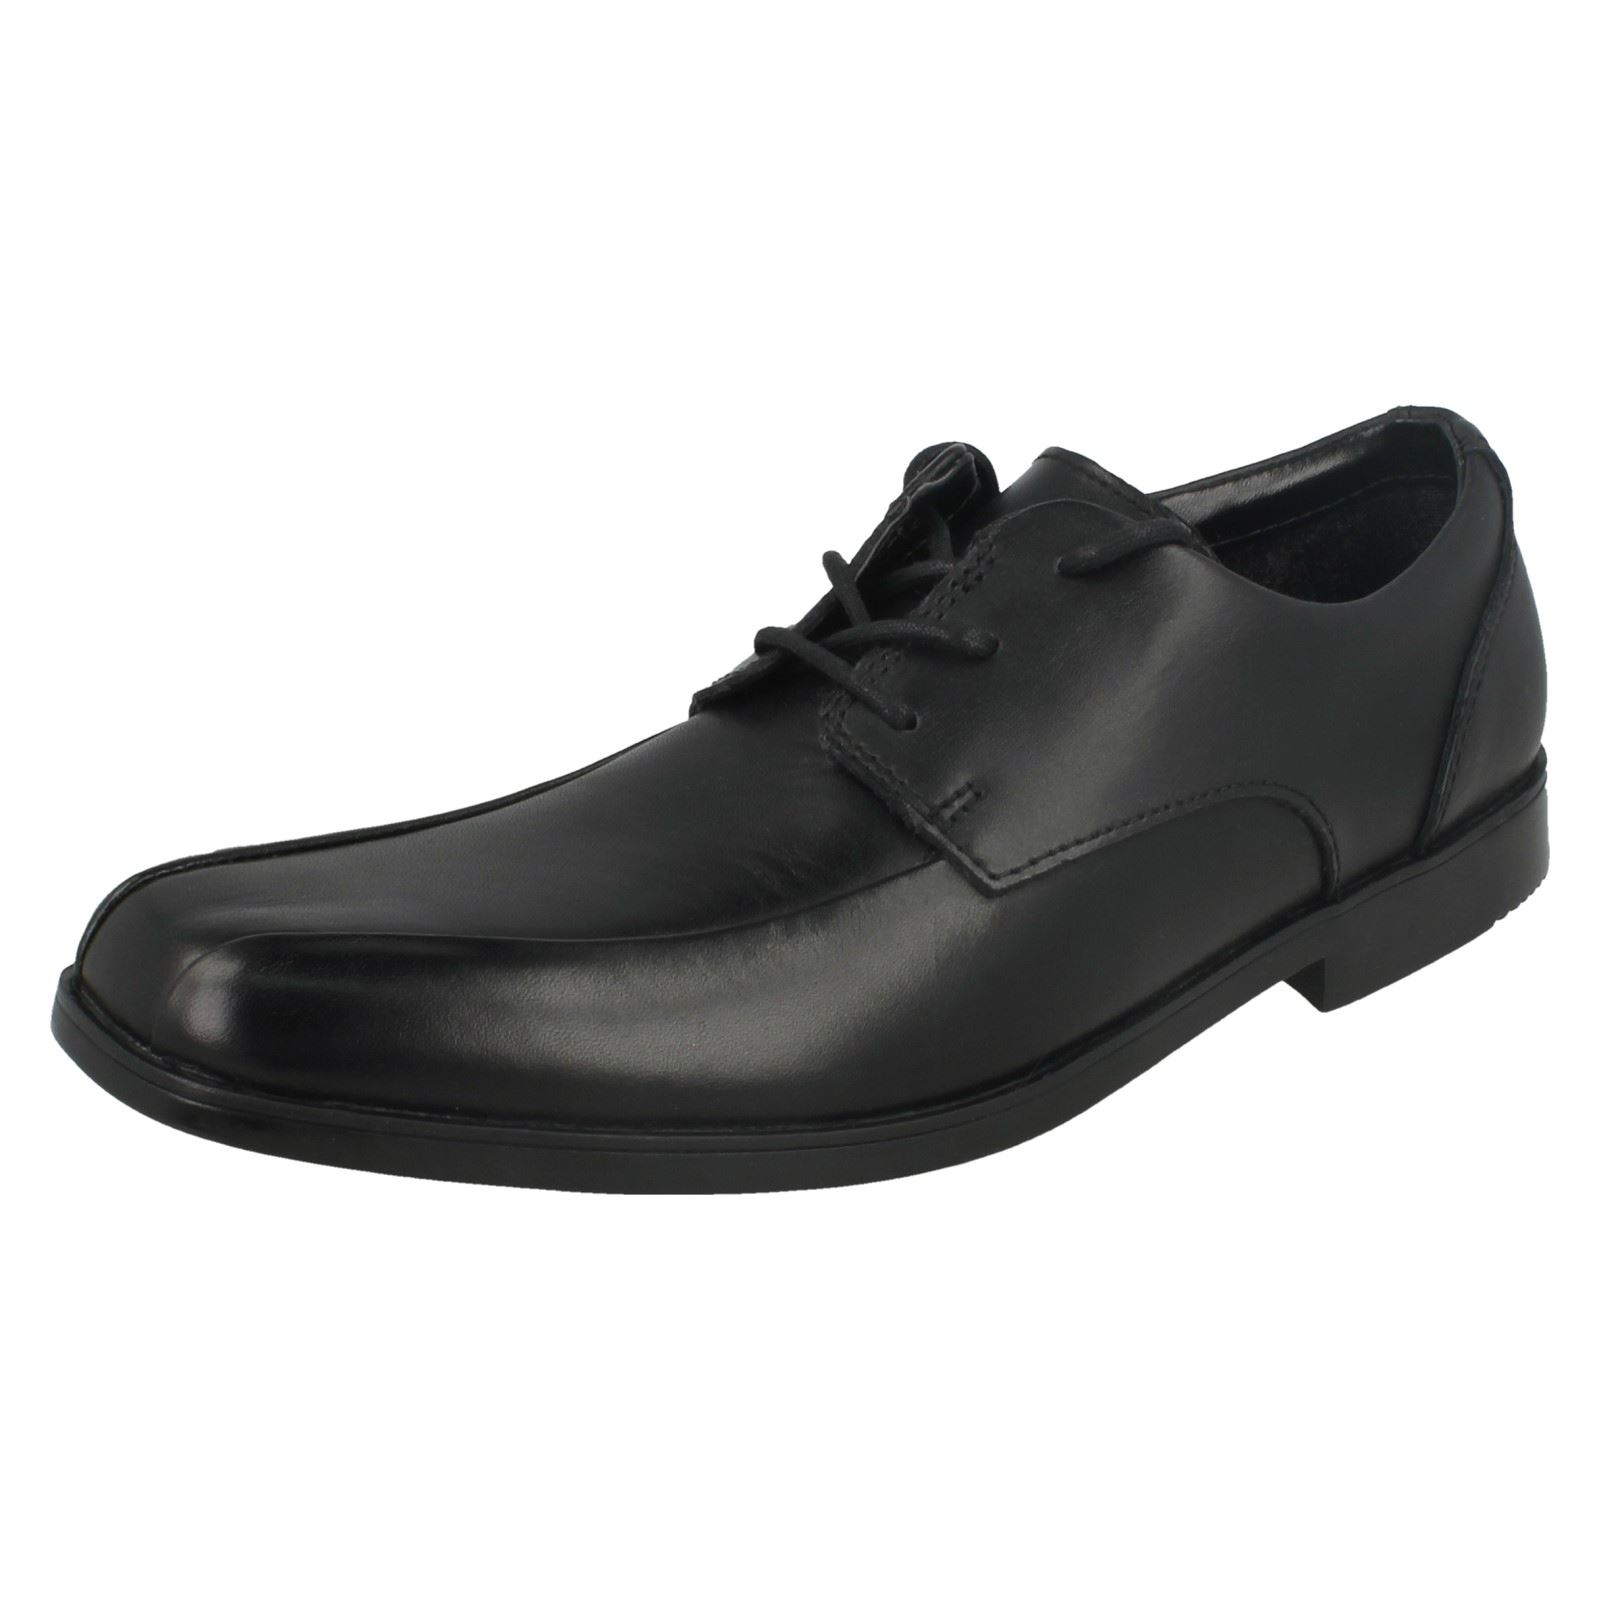 Chap Clarks Black School niño Hoxton Up pirata By para Lace Chaqueta qwE40xO